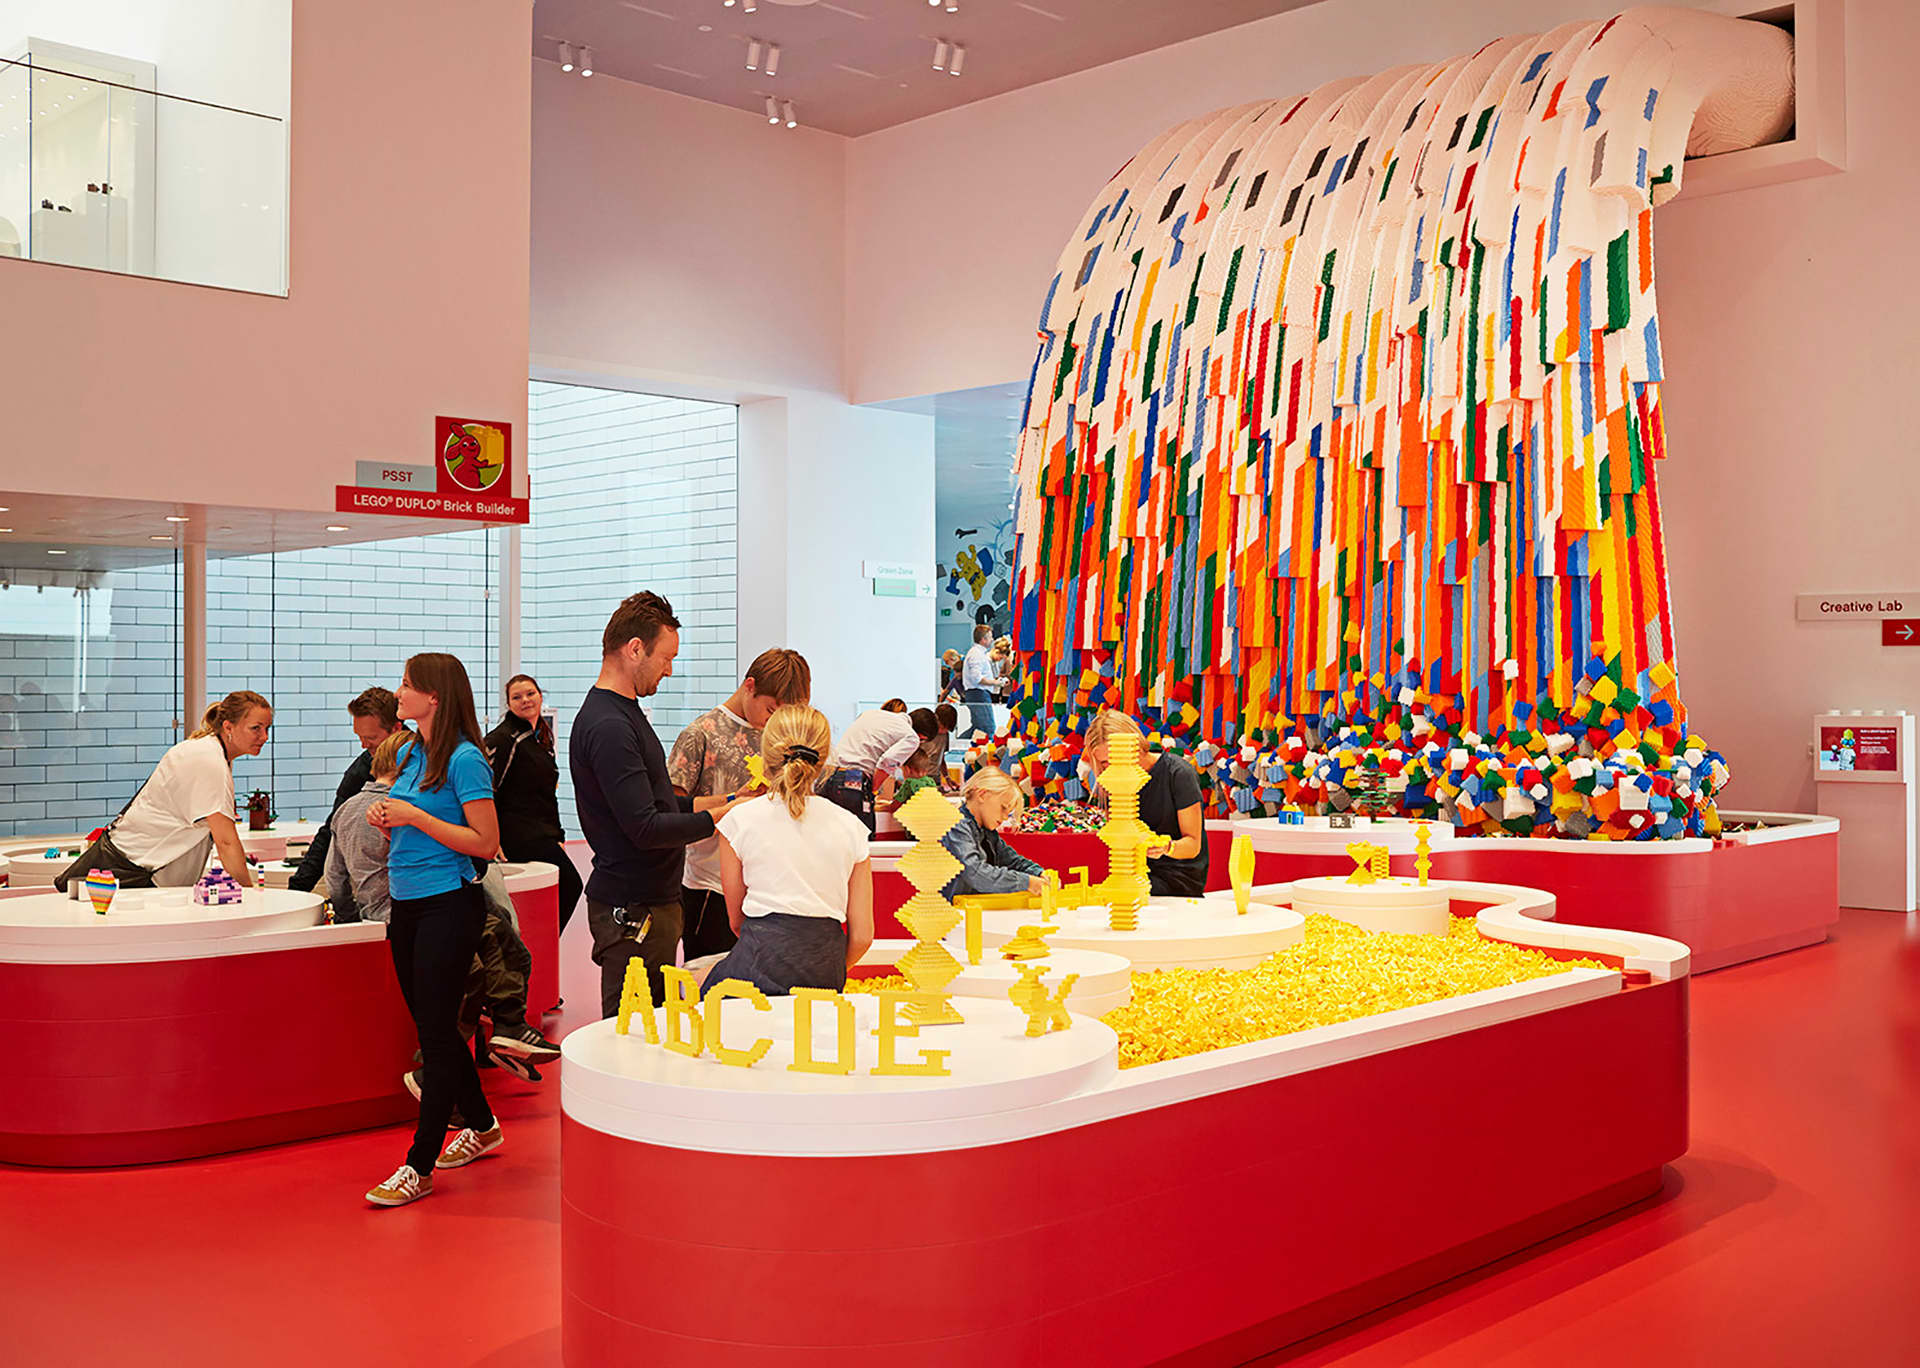 Lego: How its marketing strategy made it the world's